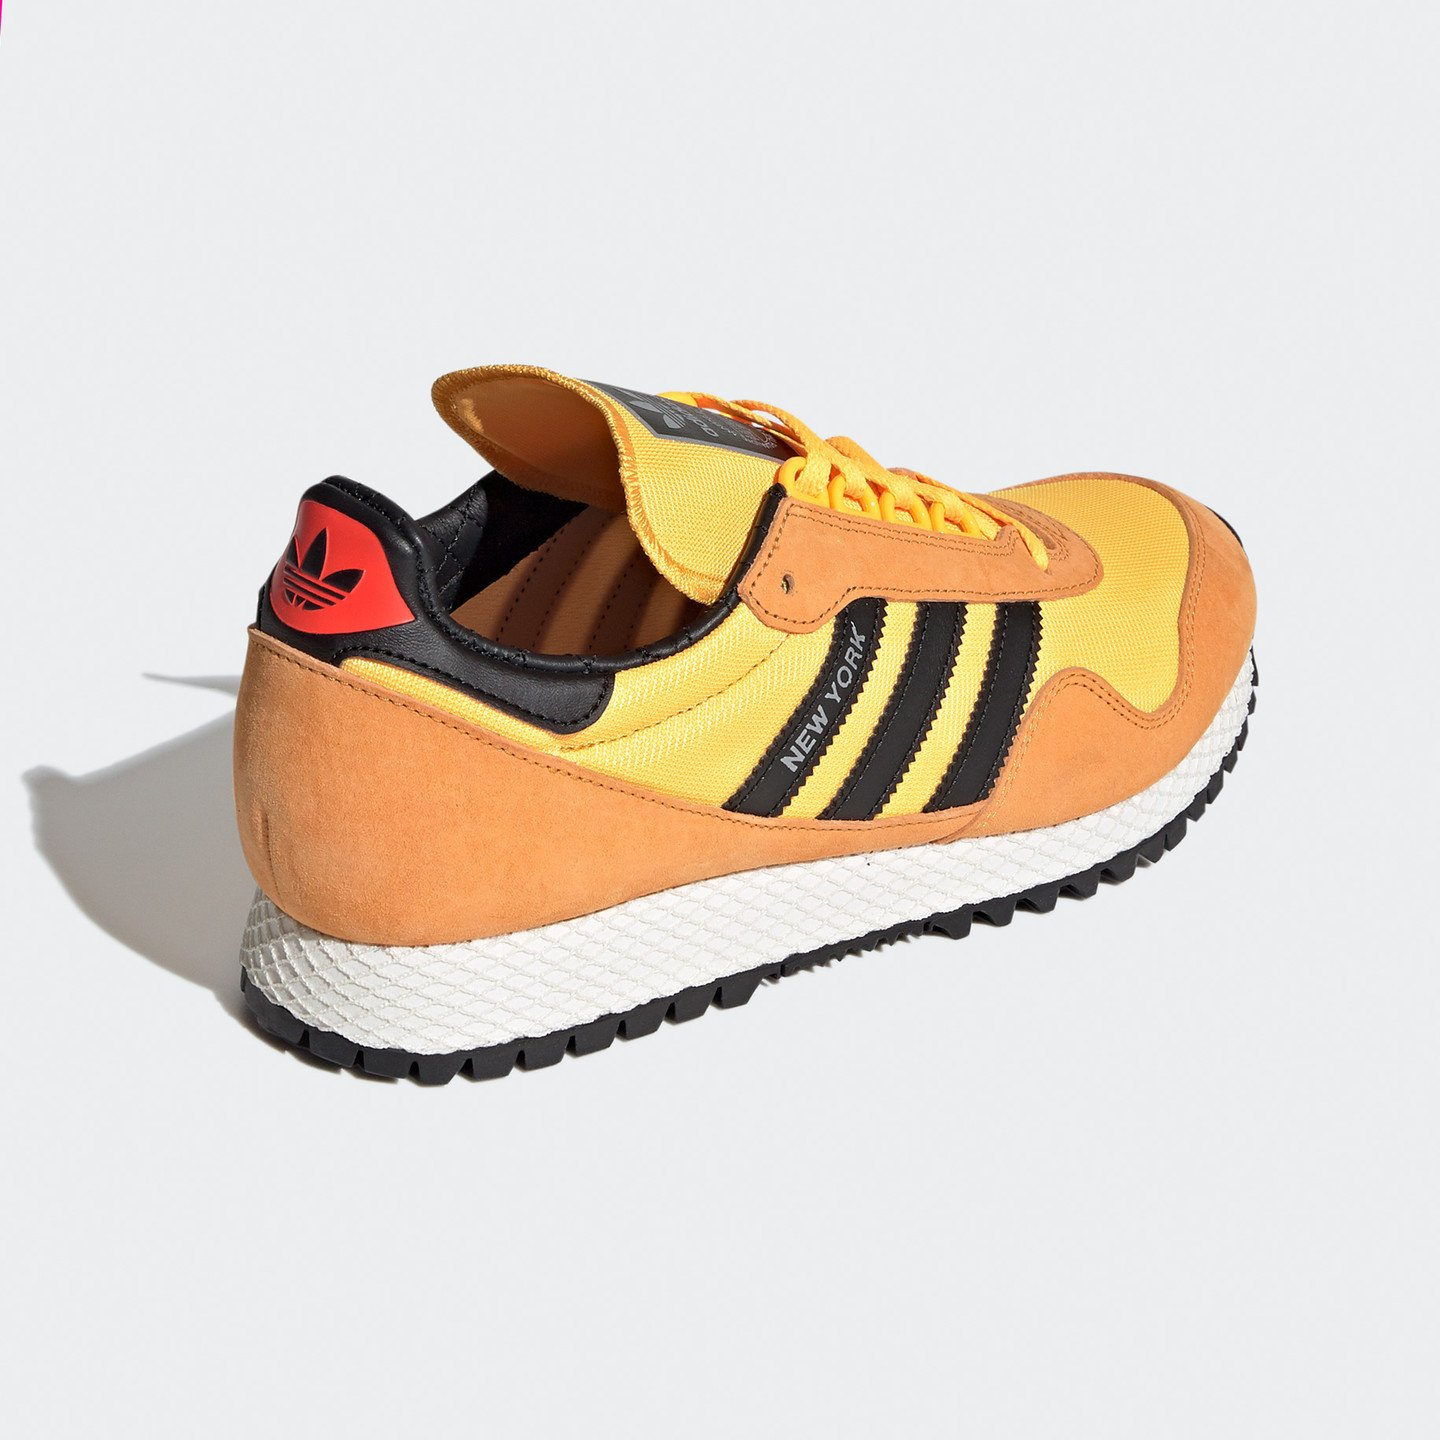 Adidas New York Yellow / Black / White FZ0738